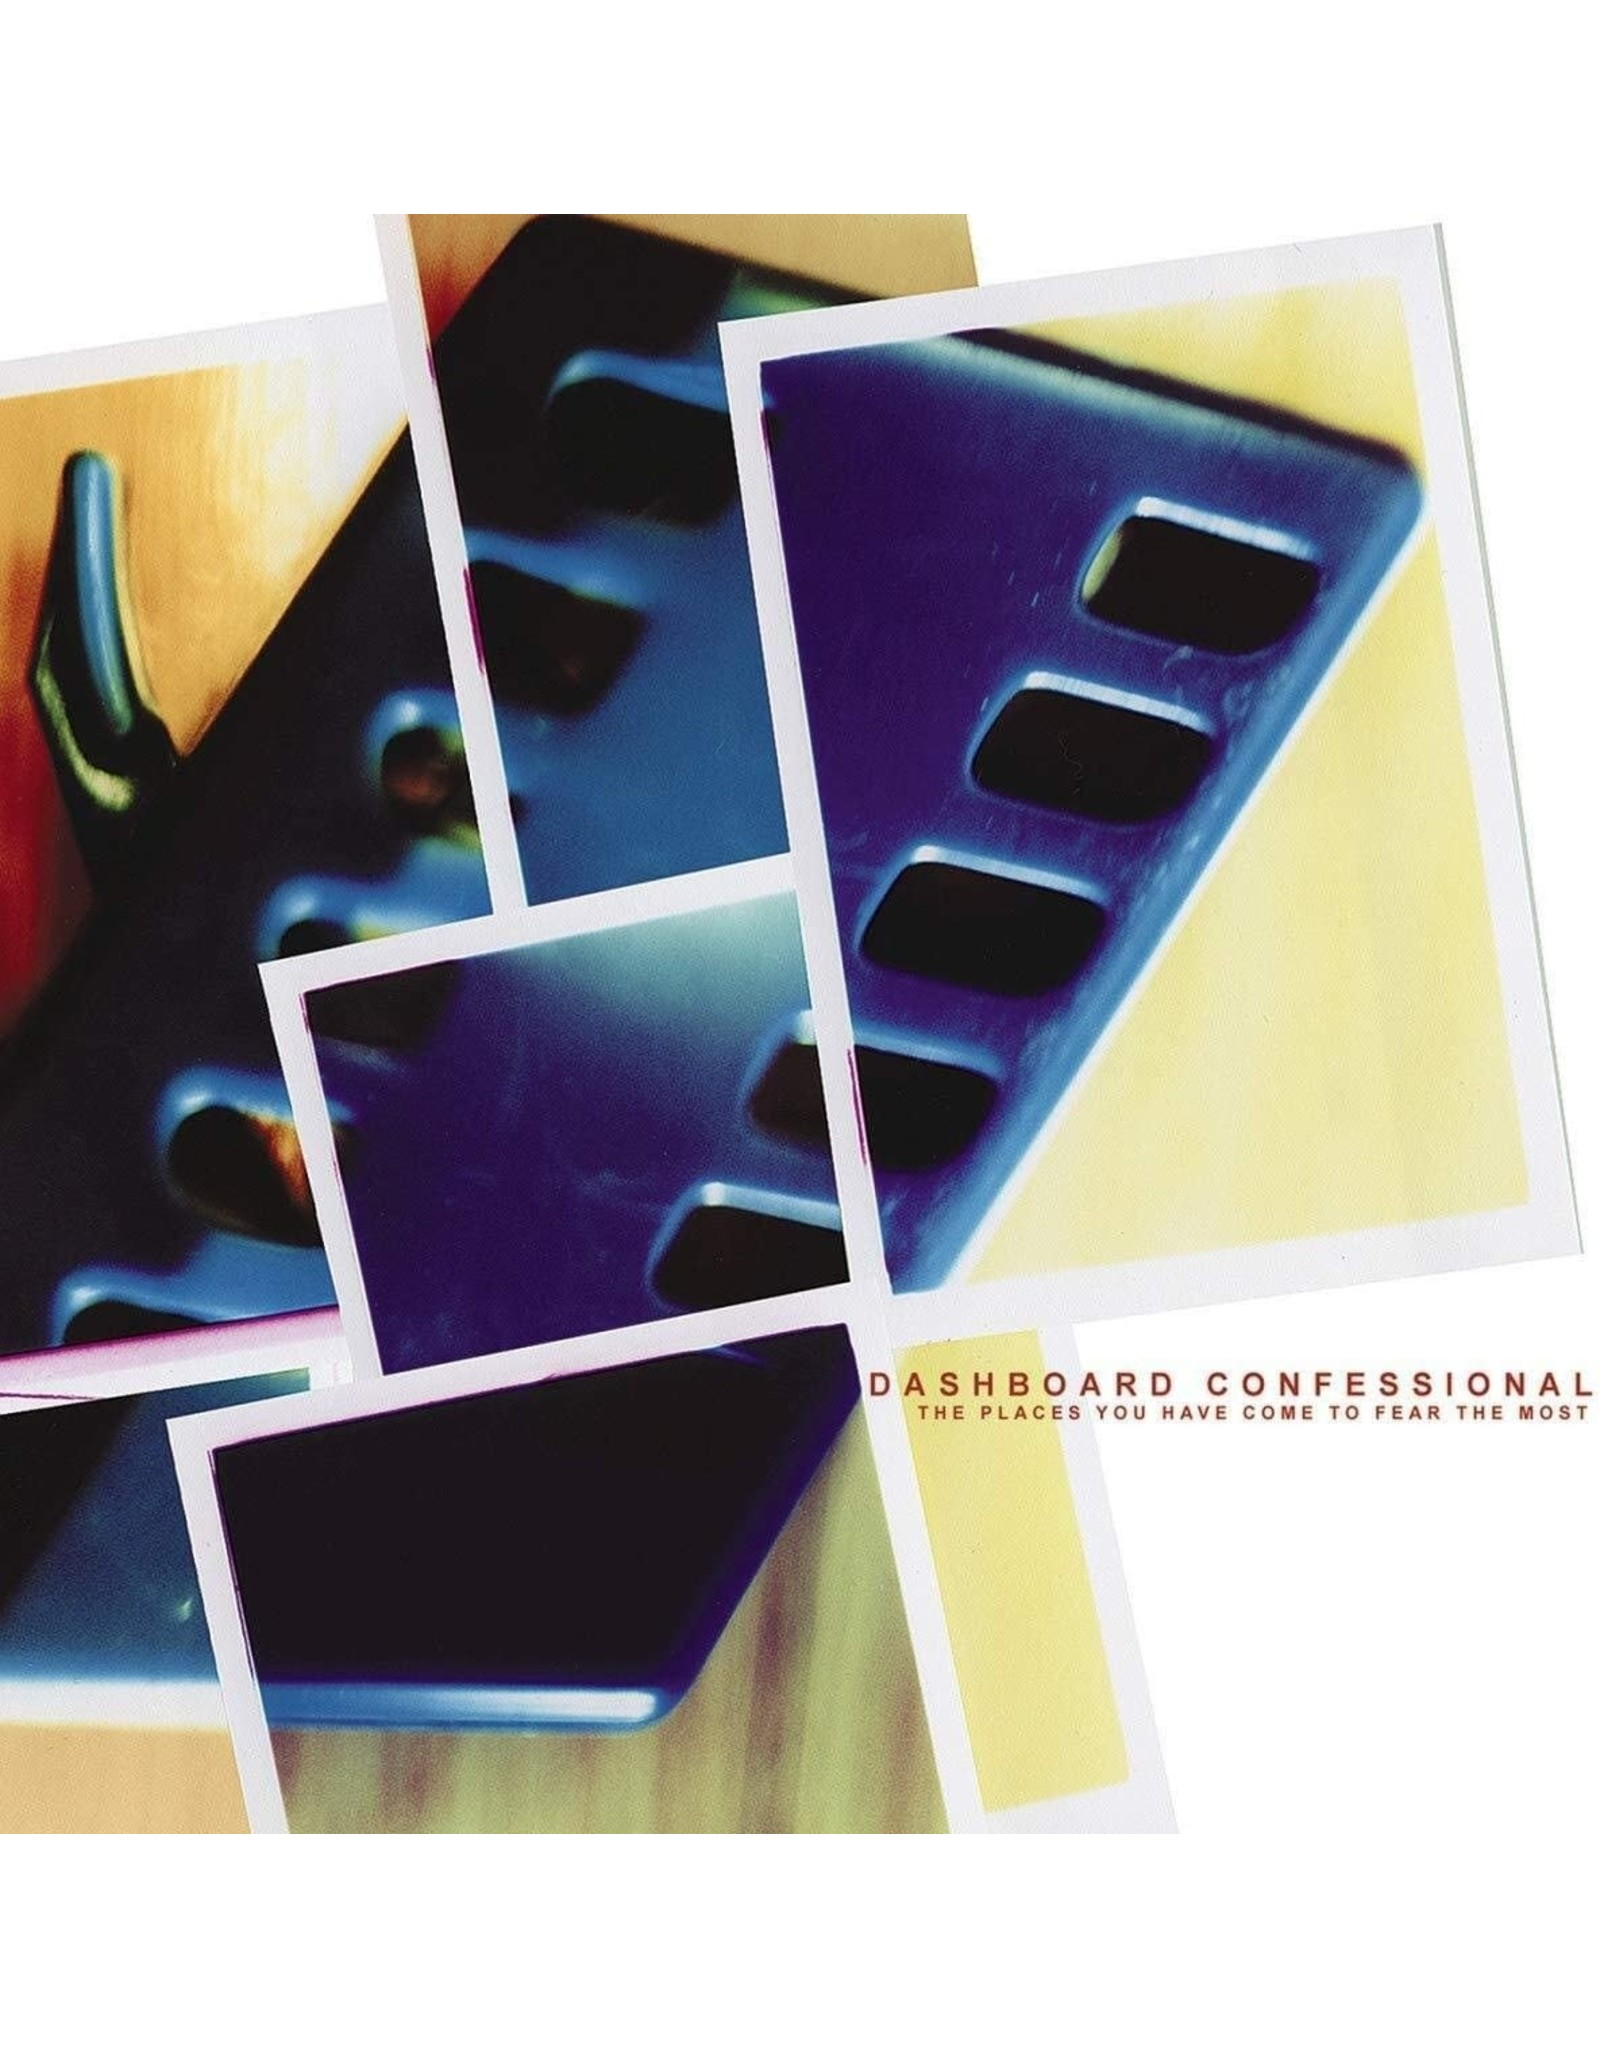 Dashboard Confessional - The Places You Have Come To Fear The Most (Exclusive Orange in Clear Vinyl)